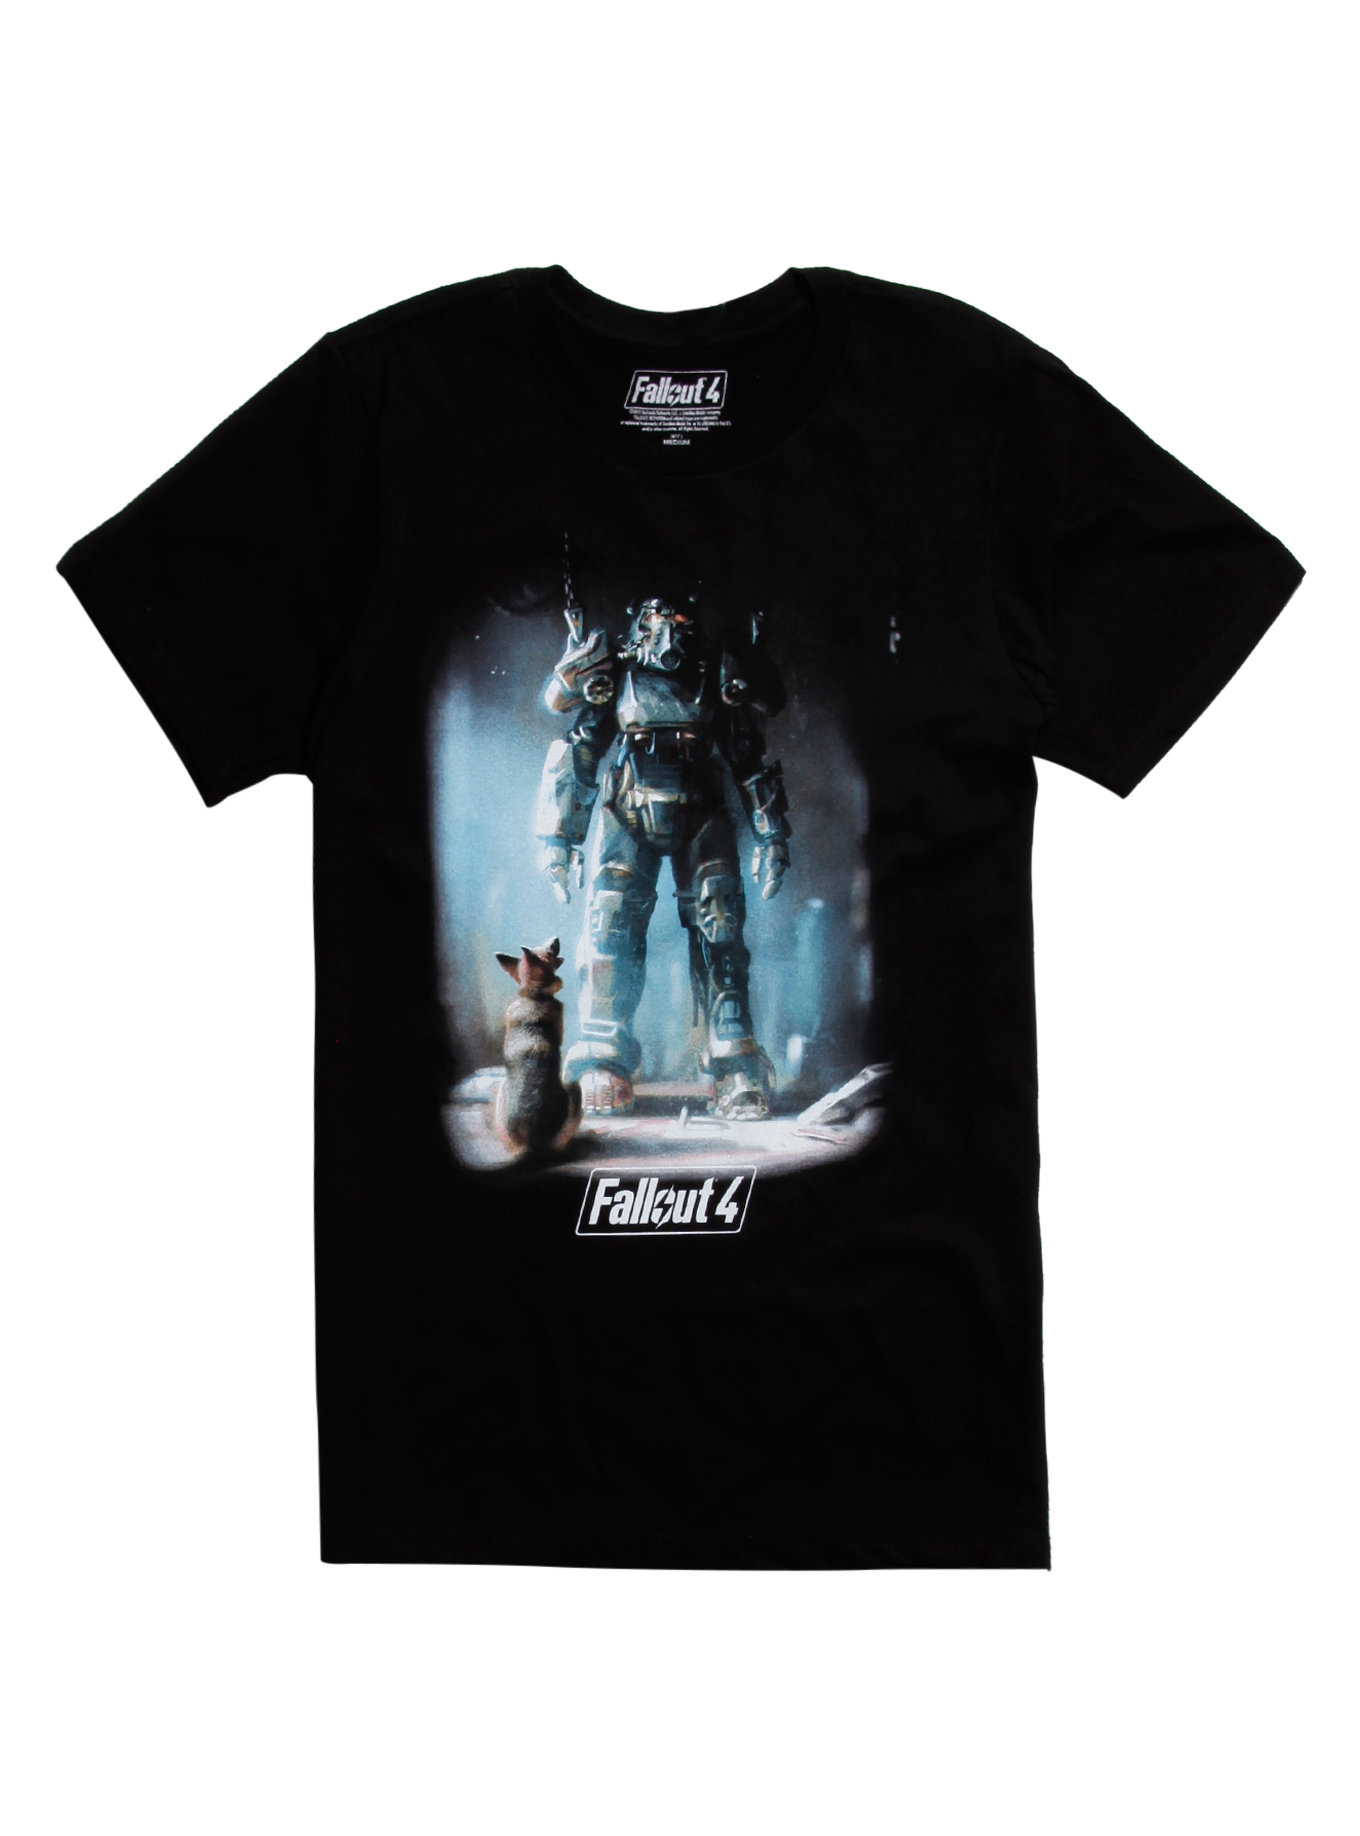 FALLOUT 4 POWER ARMOR & DOGMEAT T-SHIRT Design tee